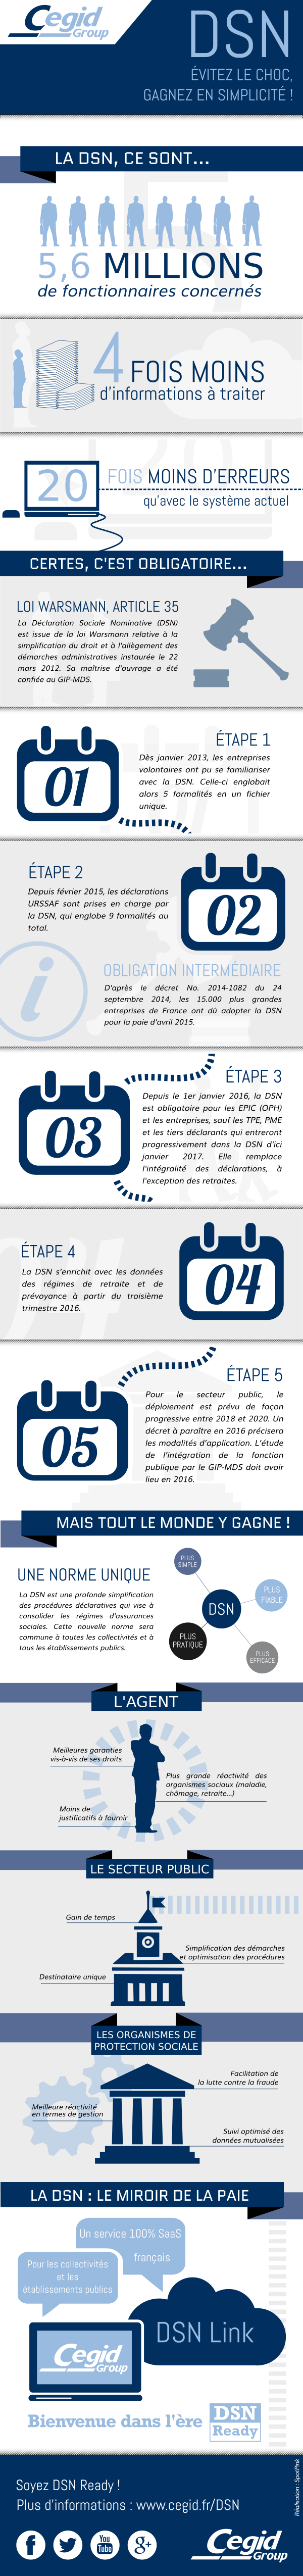 infographieupdate2016-v4